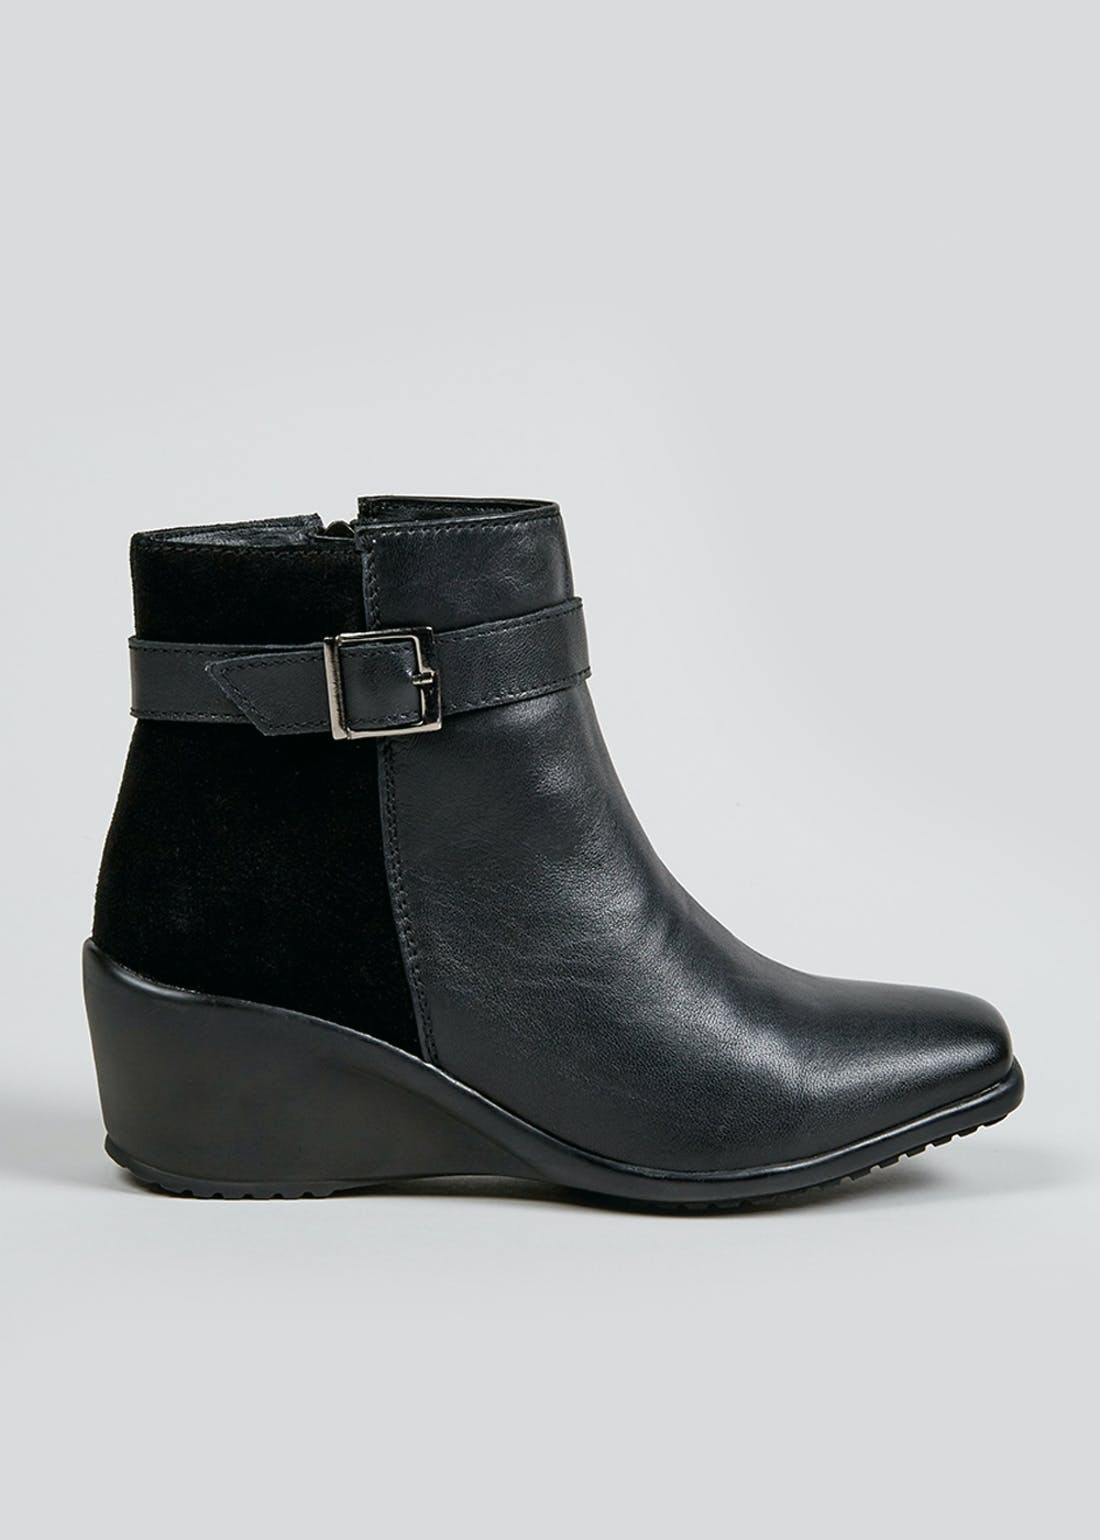 Soleflex Black Buckle Wedge Ankle Boots